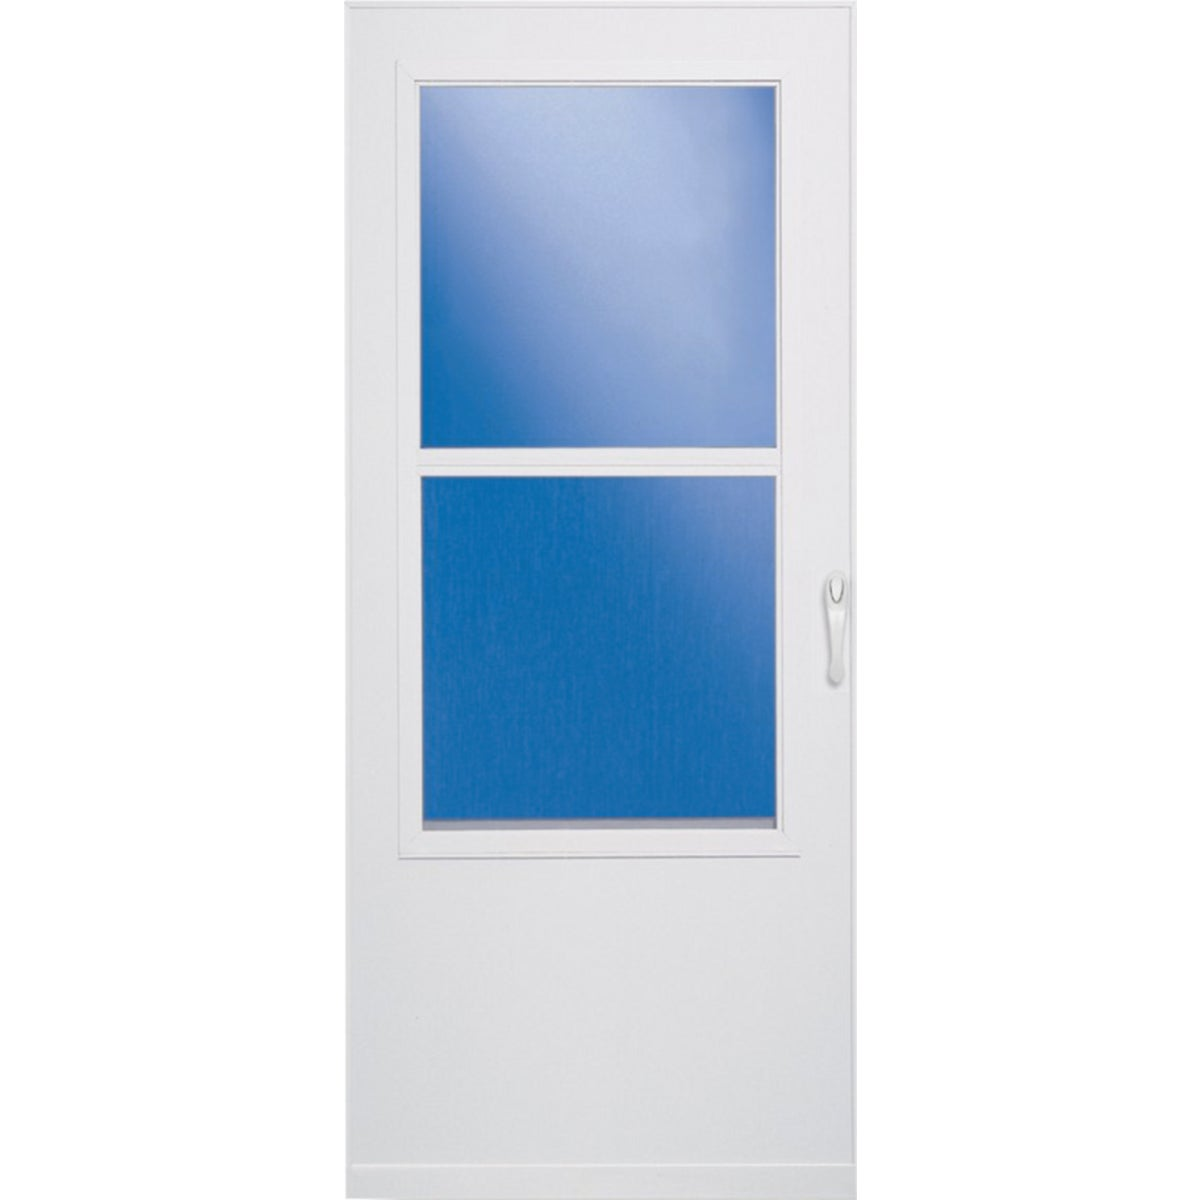 32X75 WHT STORM DOOR - 380050313 by Larson Mfg Co